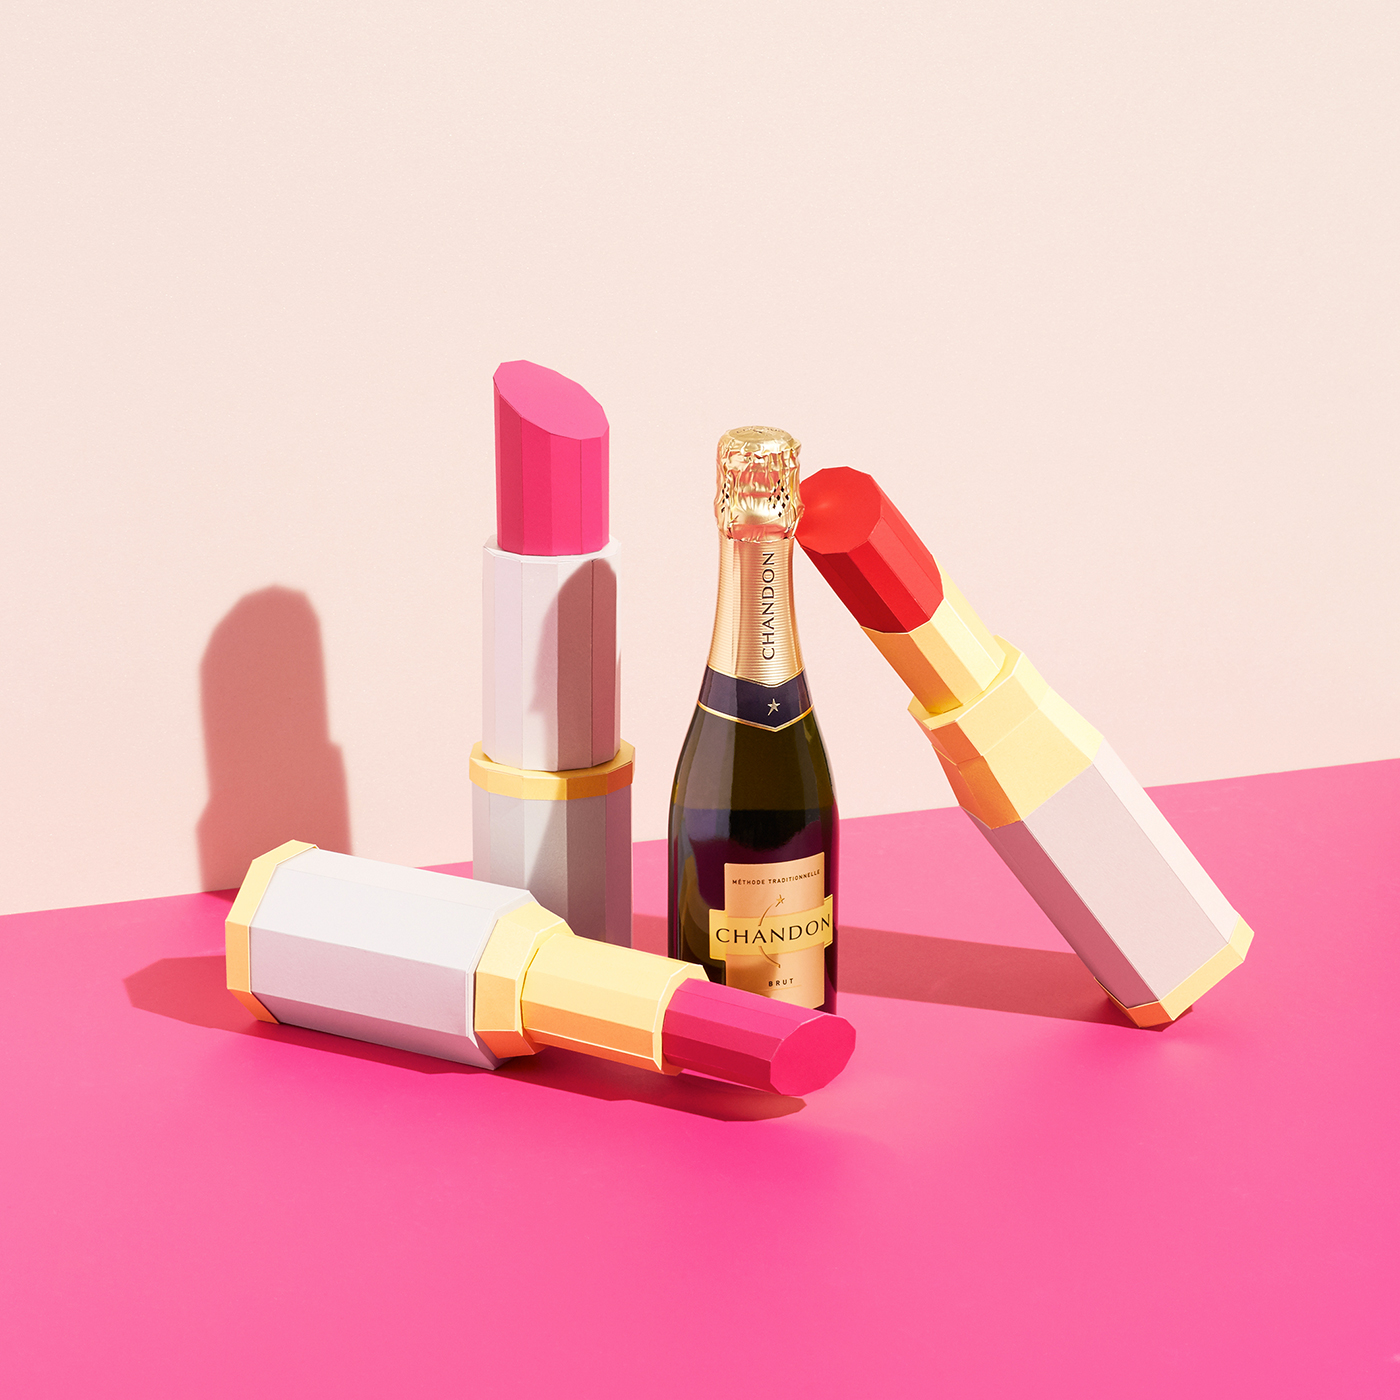 Bold and Colorful Advertising Campaign for Chandon in Paper By REVERBERE